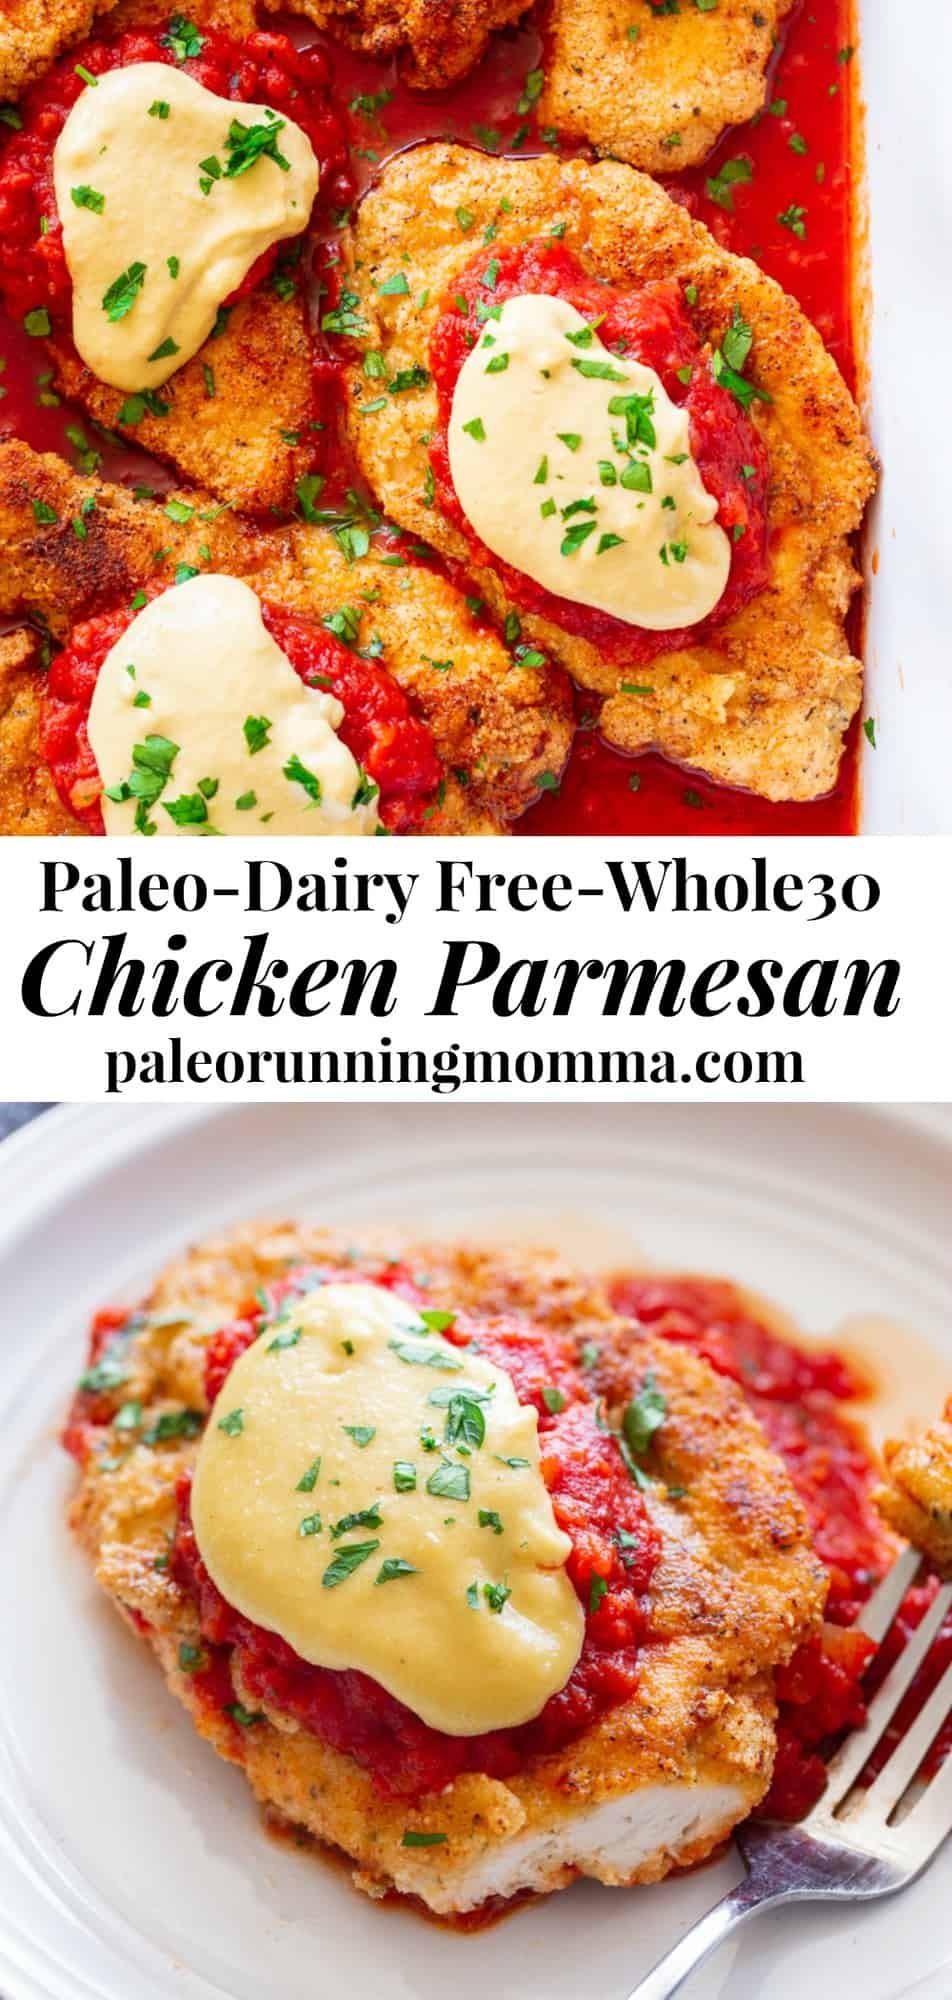 "This dairy-free and Paleo Chicken Parmesan has all the flavors of the real deal!  Crisp ""breaded"" chicken cutlets are layered with marinara and a flavor-packed cashew ""cheese"" sauce that's perfect for any special dinner.   Gluten-free, Whole30, no sugar added, dairy-free. #paleo #whole30 #cleaneating"